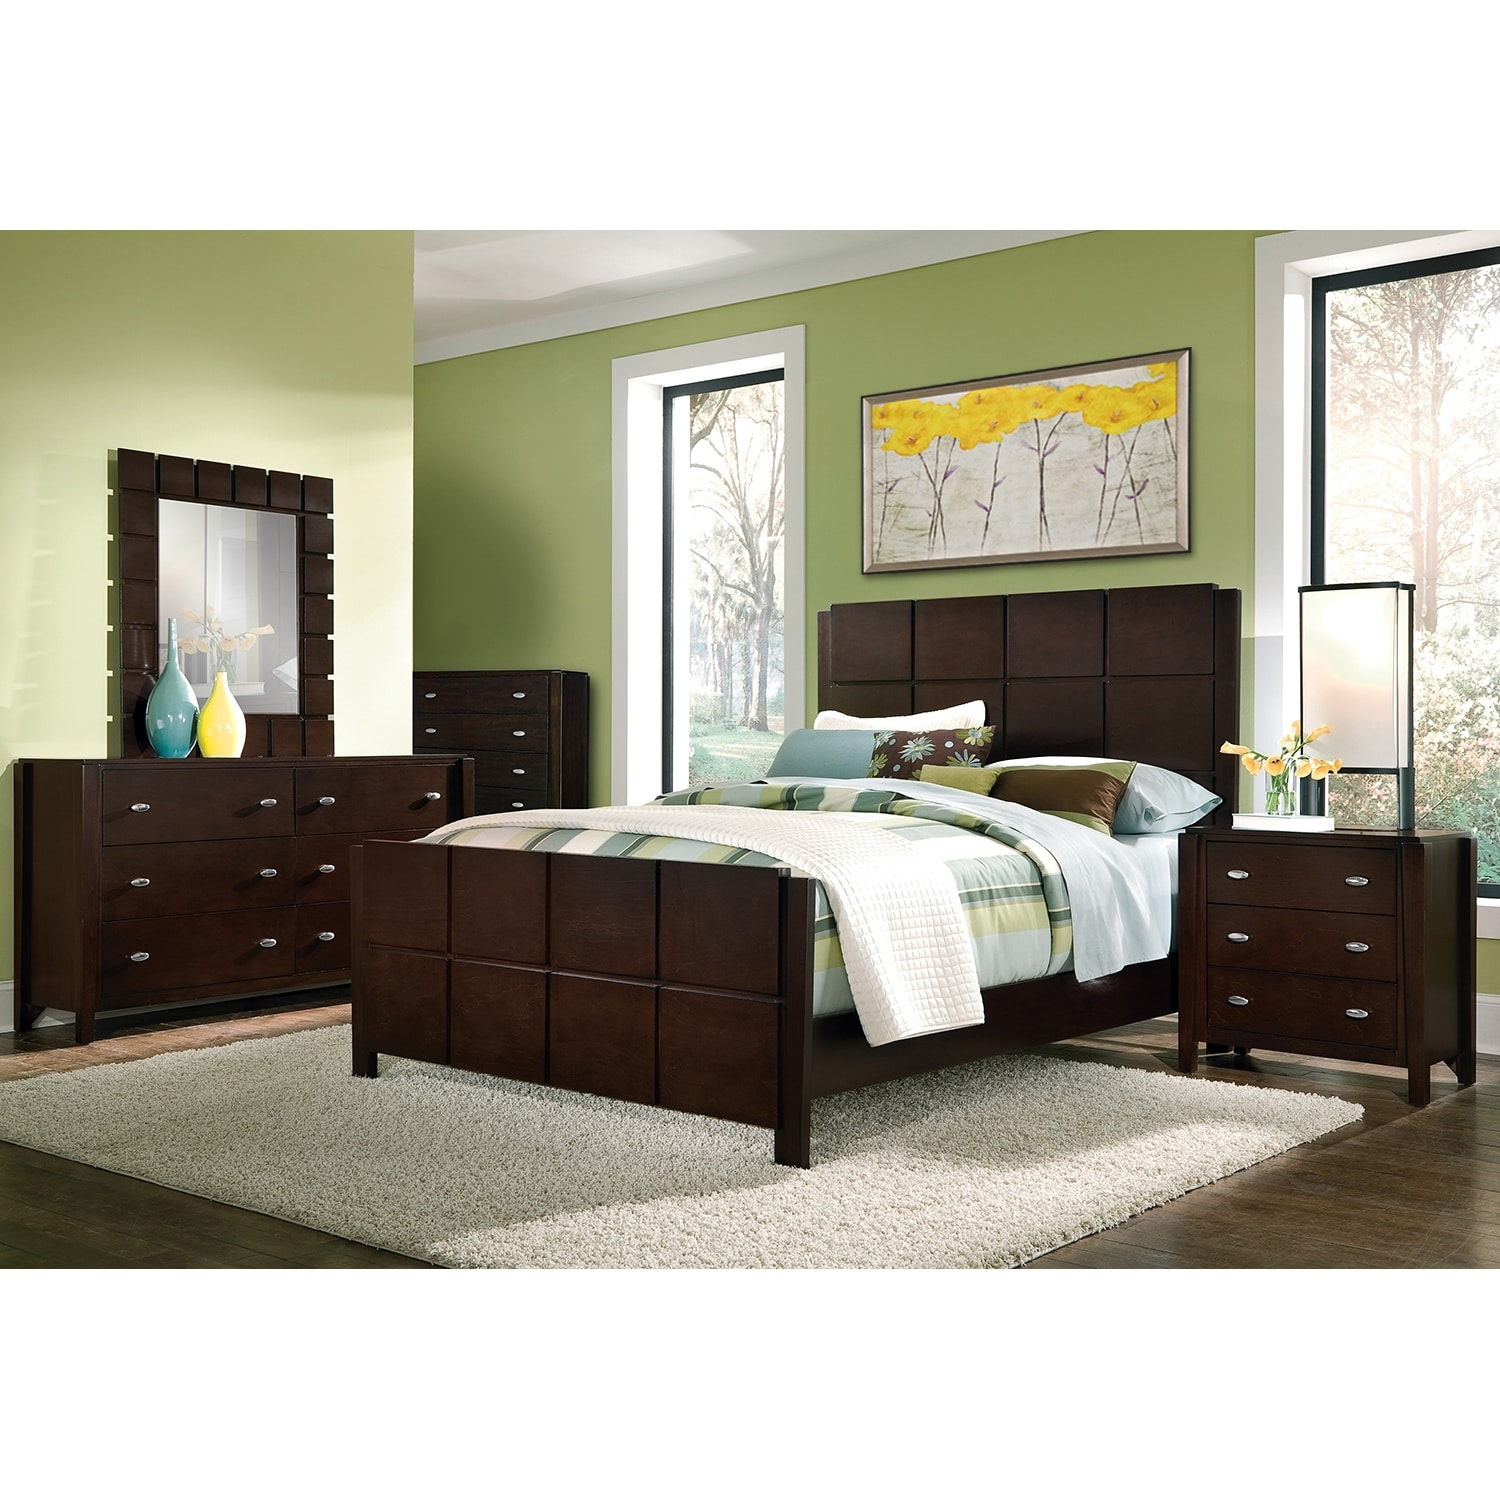 value bedroom sets of centerfieldbar city home clearance samples furniture inspirational